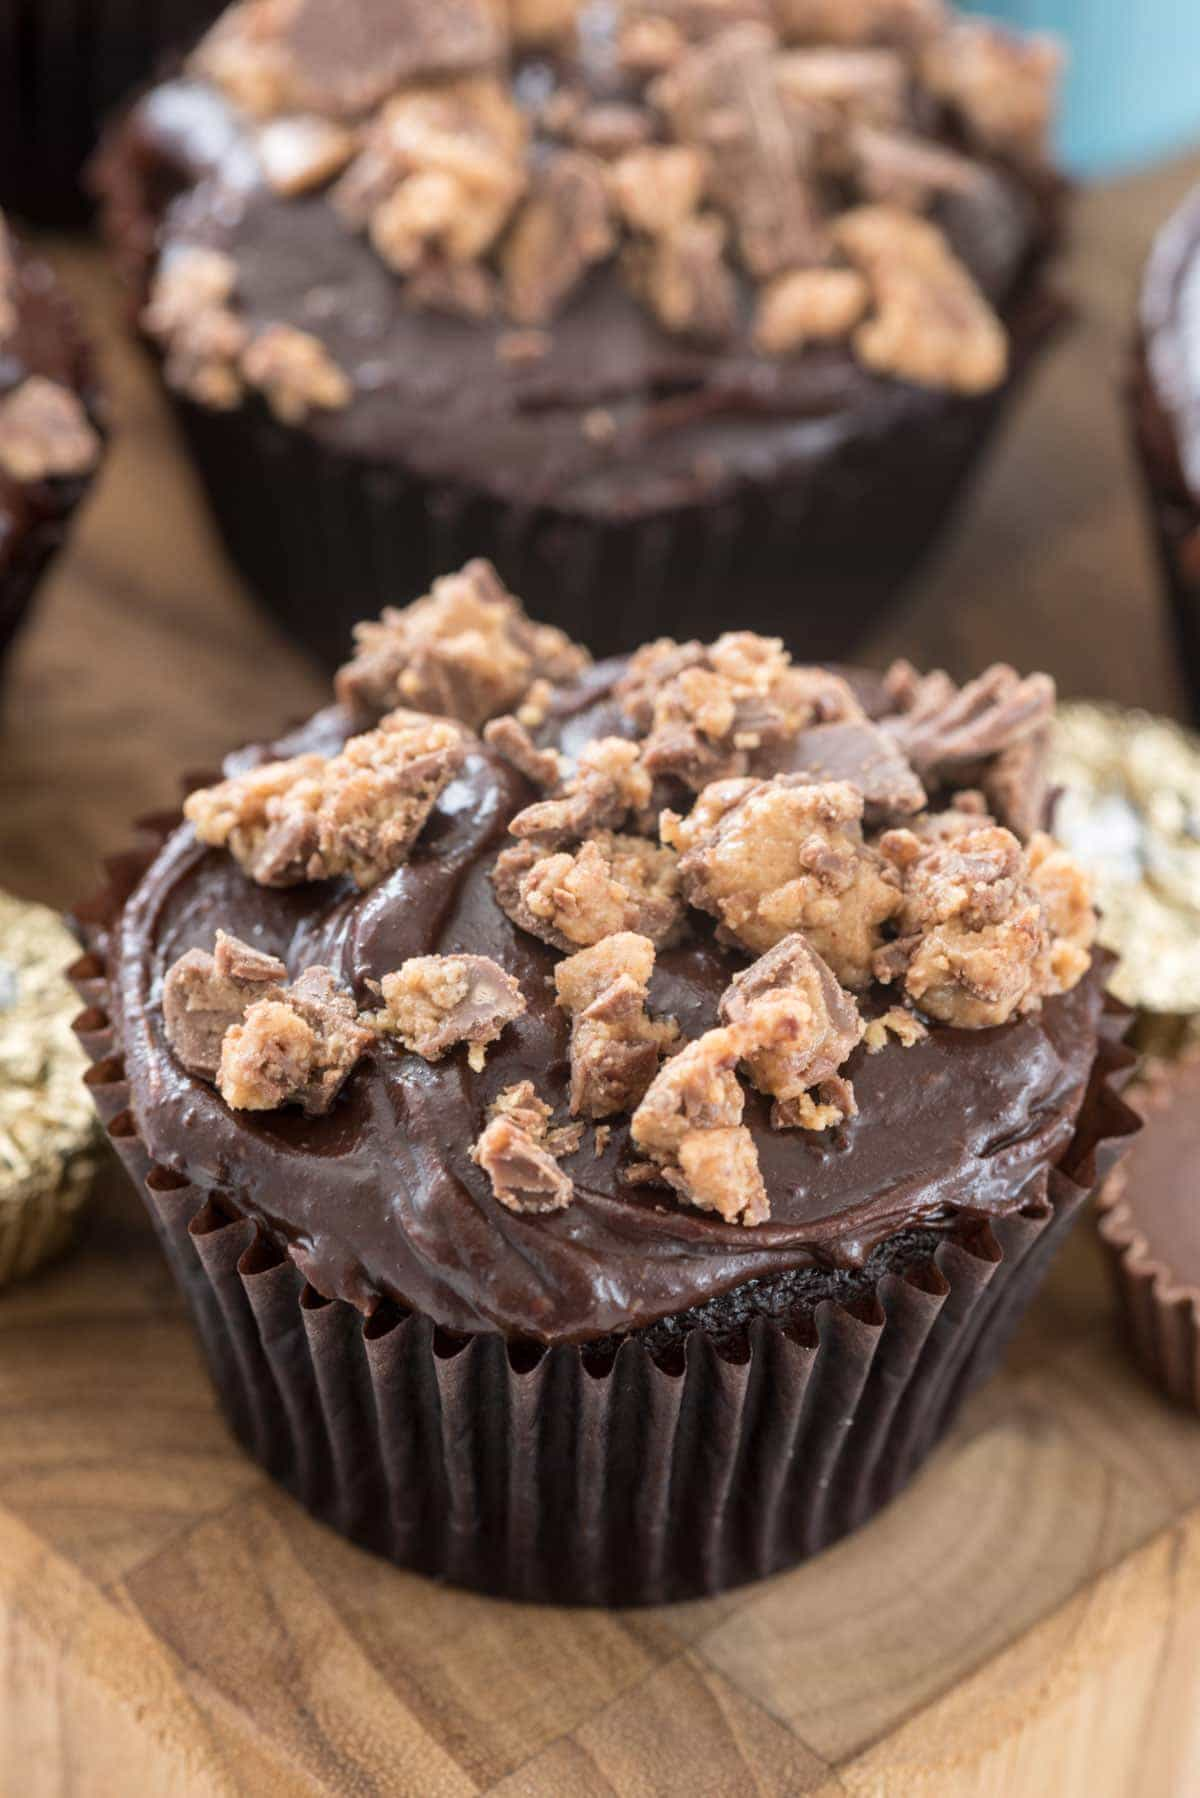 Peanut Butter Cup Cupcakes - chocolate cupcakes filled with peanut ...